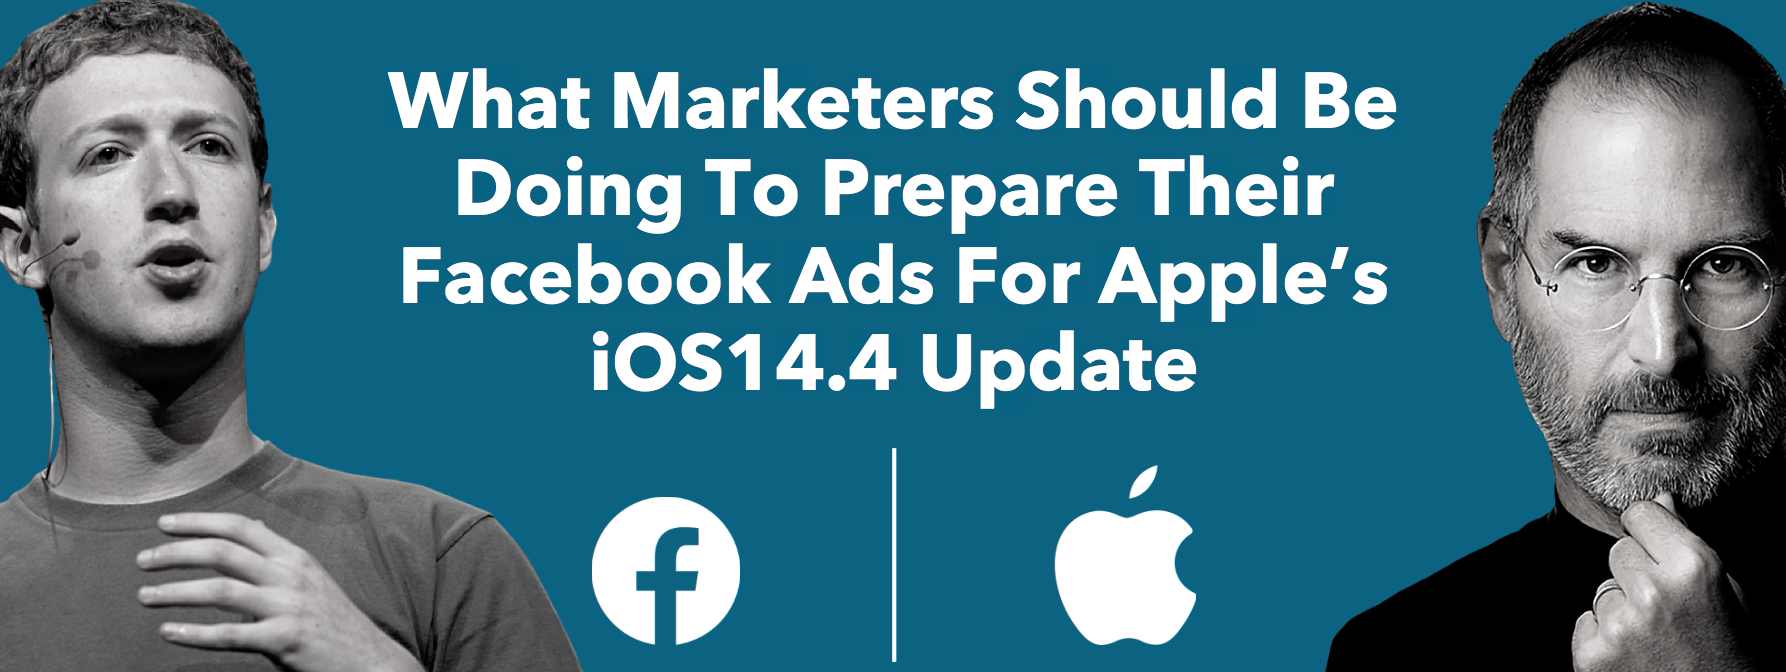 What to Expect For Apple's iOS14.4 Update for Facebook Ads & What You Should Do About It